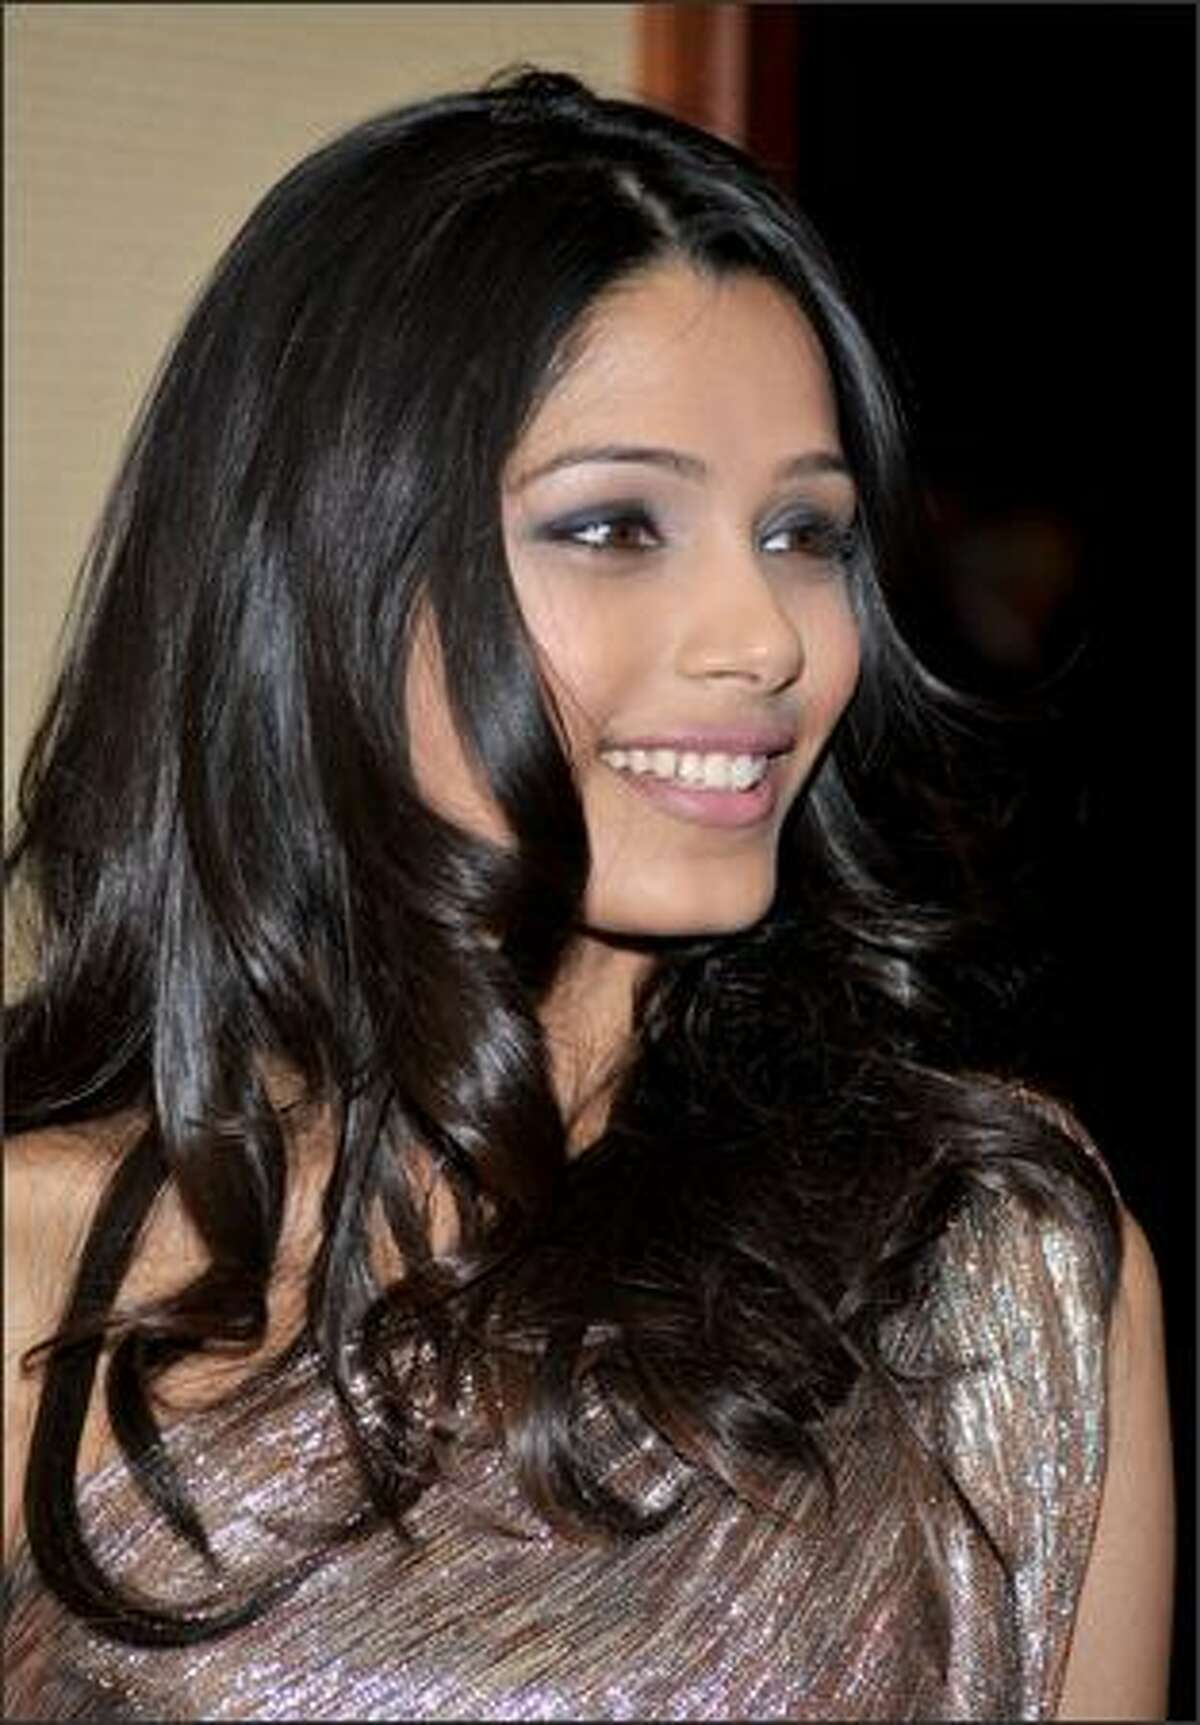 Actress Freida Pinto arrives at the 61st Annual Directors Guild of America Awards at the Hyatt Regency Century Plaza in Los Angeles, California.